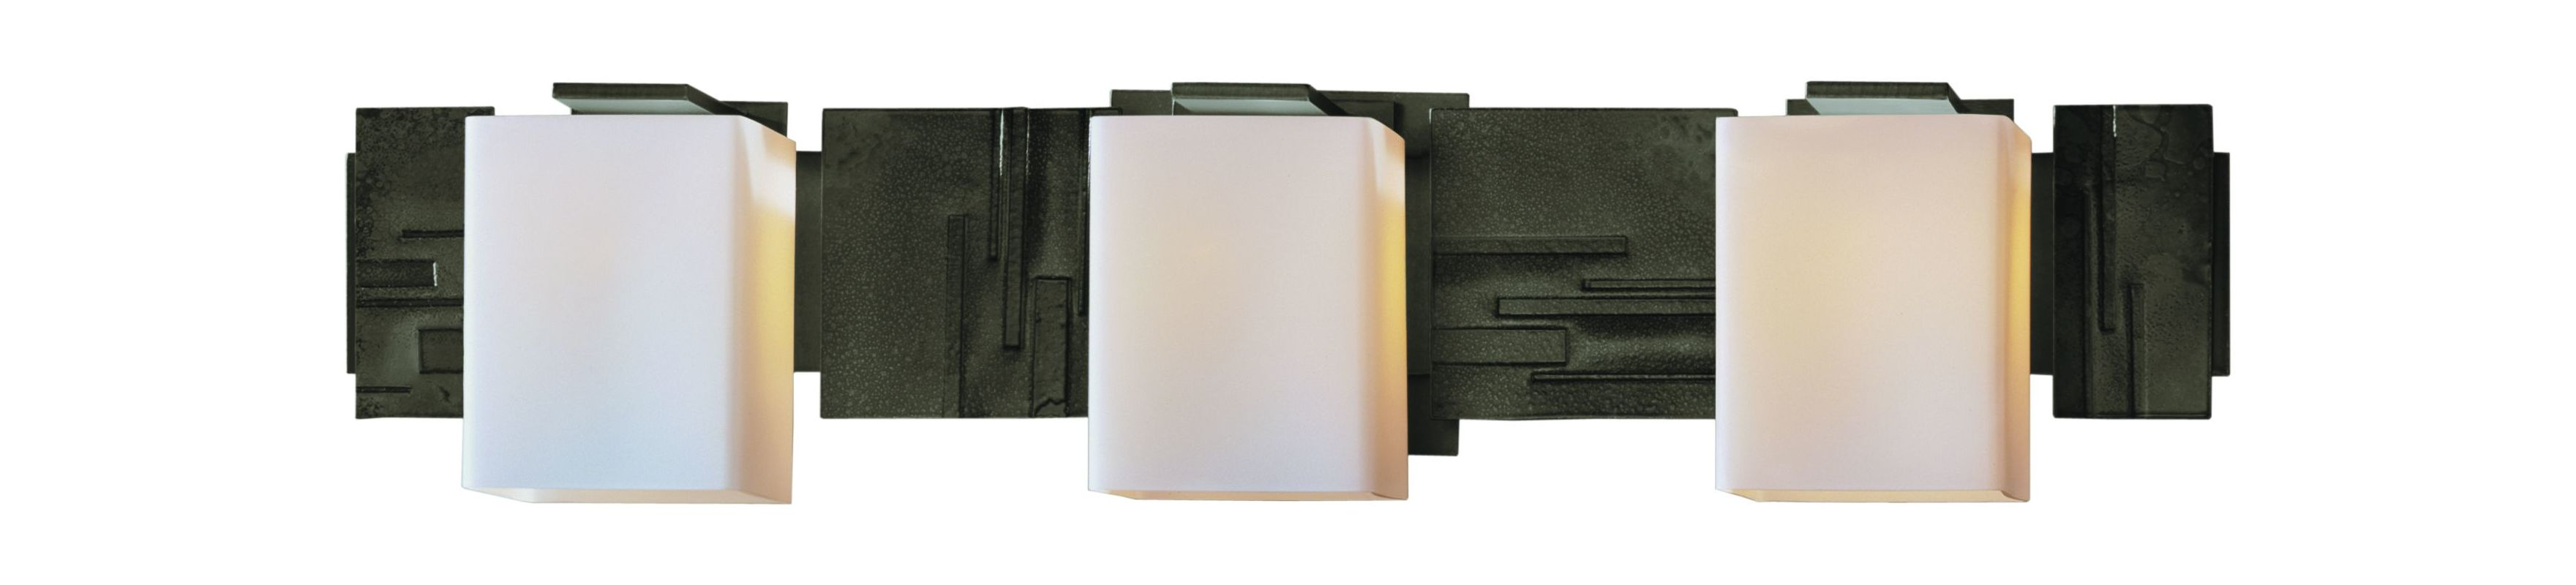 Hubbardton Forge 207843 3 Light Down Lighting Wall Sconce from the Sale $1040.60 ITEM#: 1670548 MODEL# :207843-07 :